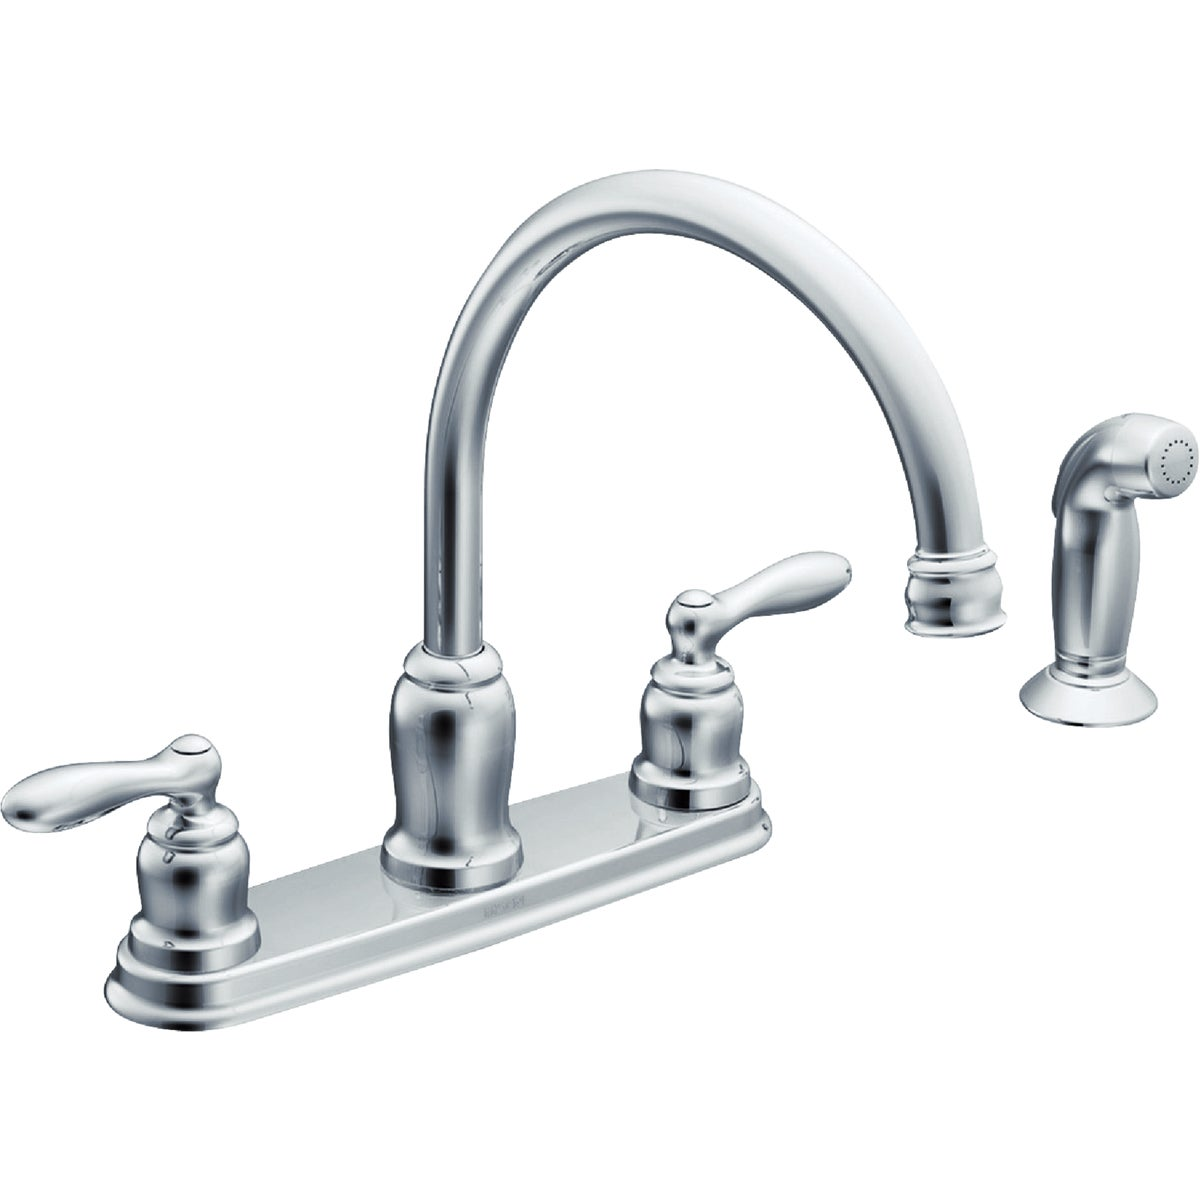 2H CH KIT FAUCET W/SPRY - CA87888 by Moen Inc